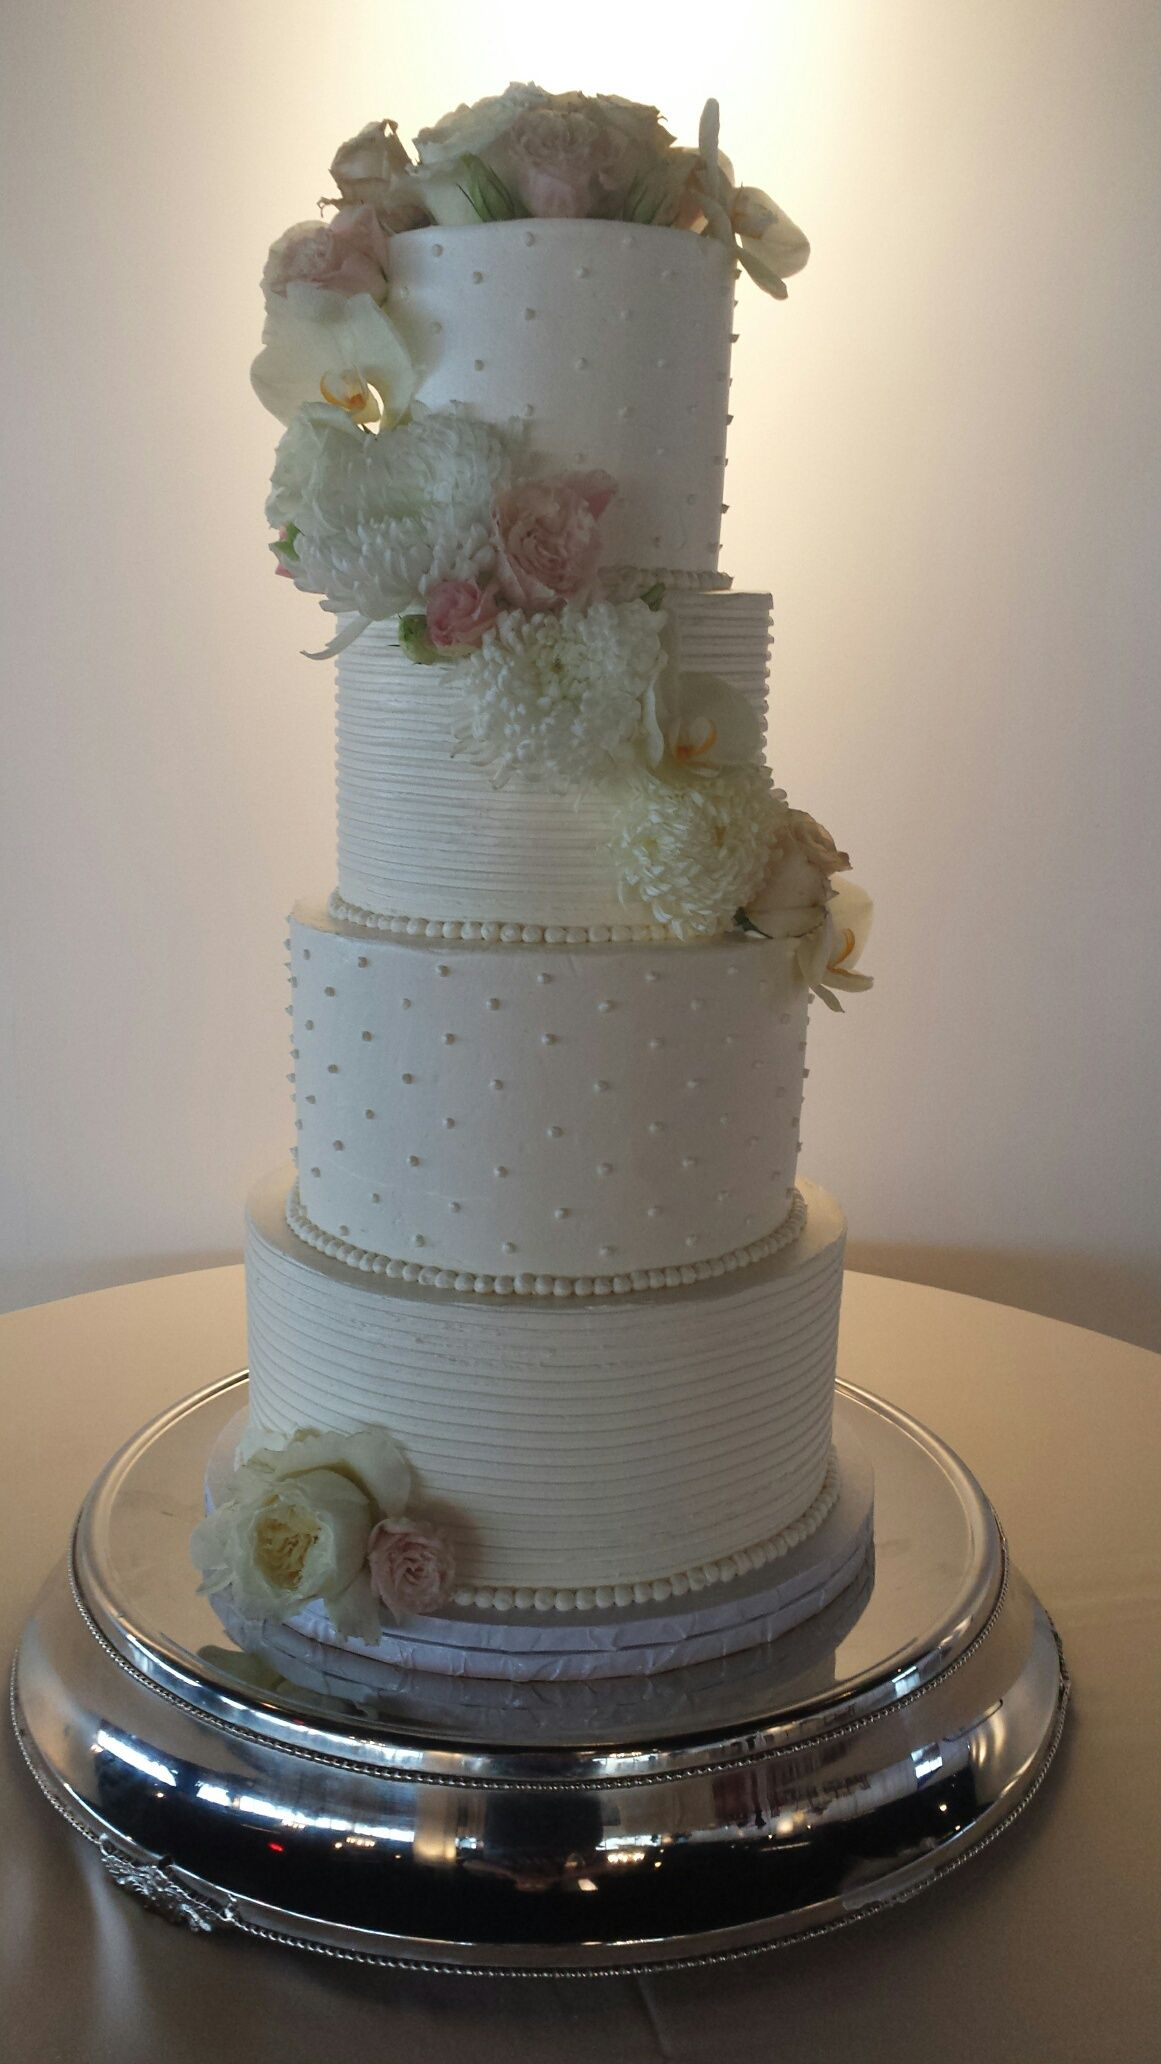 Merveilleux Pretty Floral Wedding Cake By Short North Piece Of Cake In Columbus, Ohio.